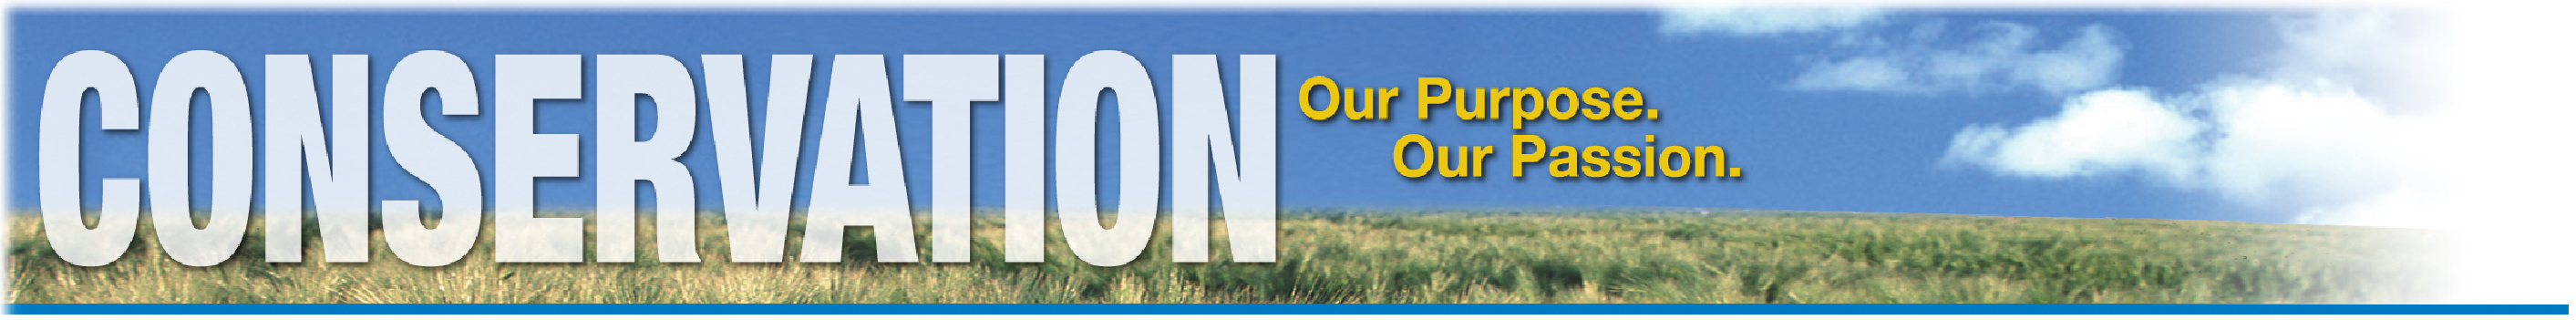 CONSERVATION Our Purpose Our Passion banner